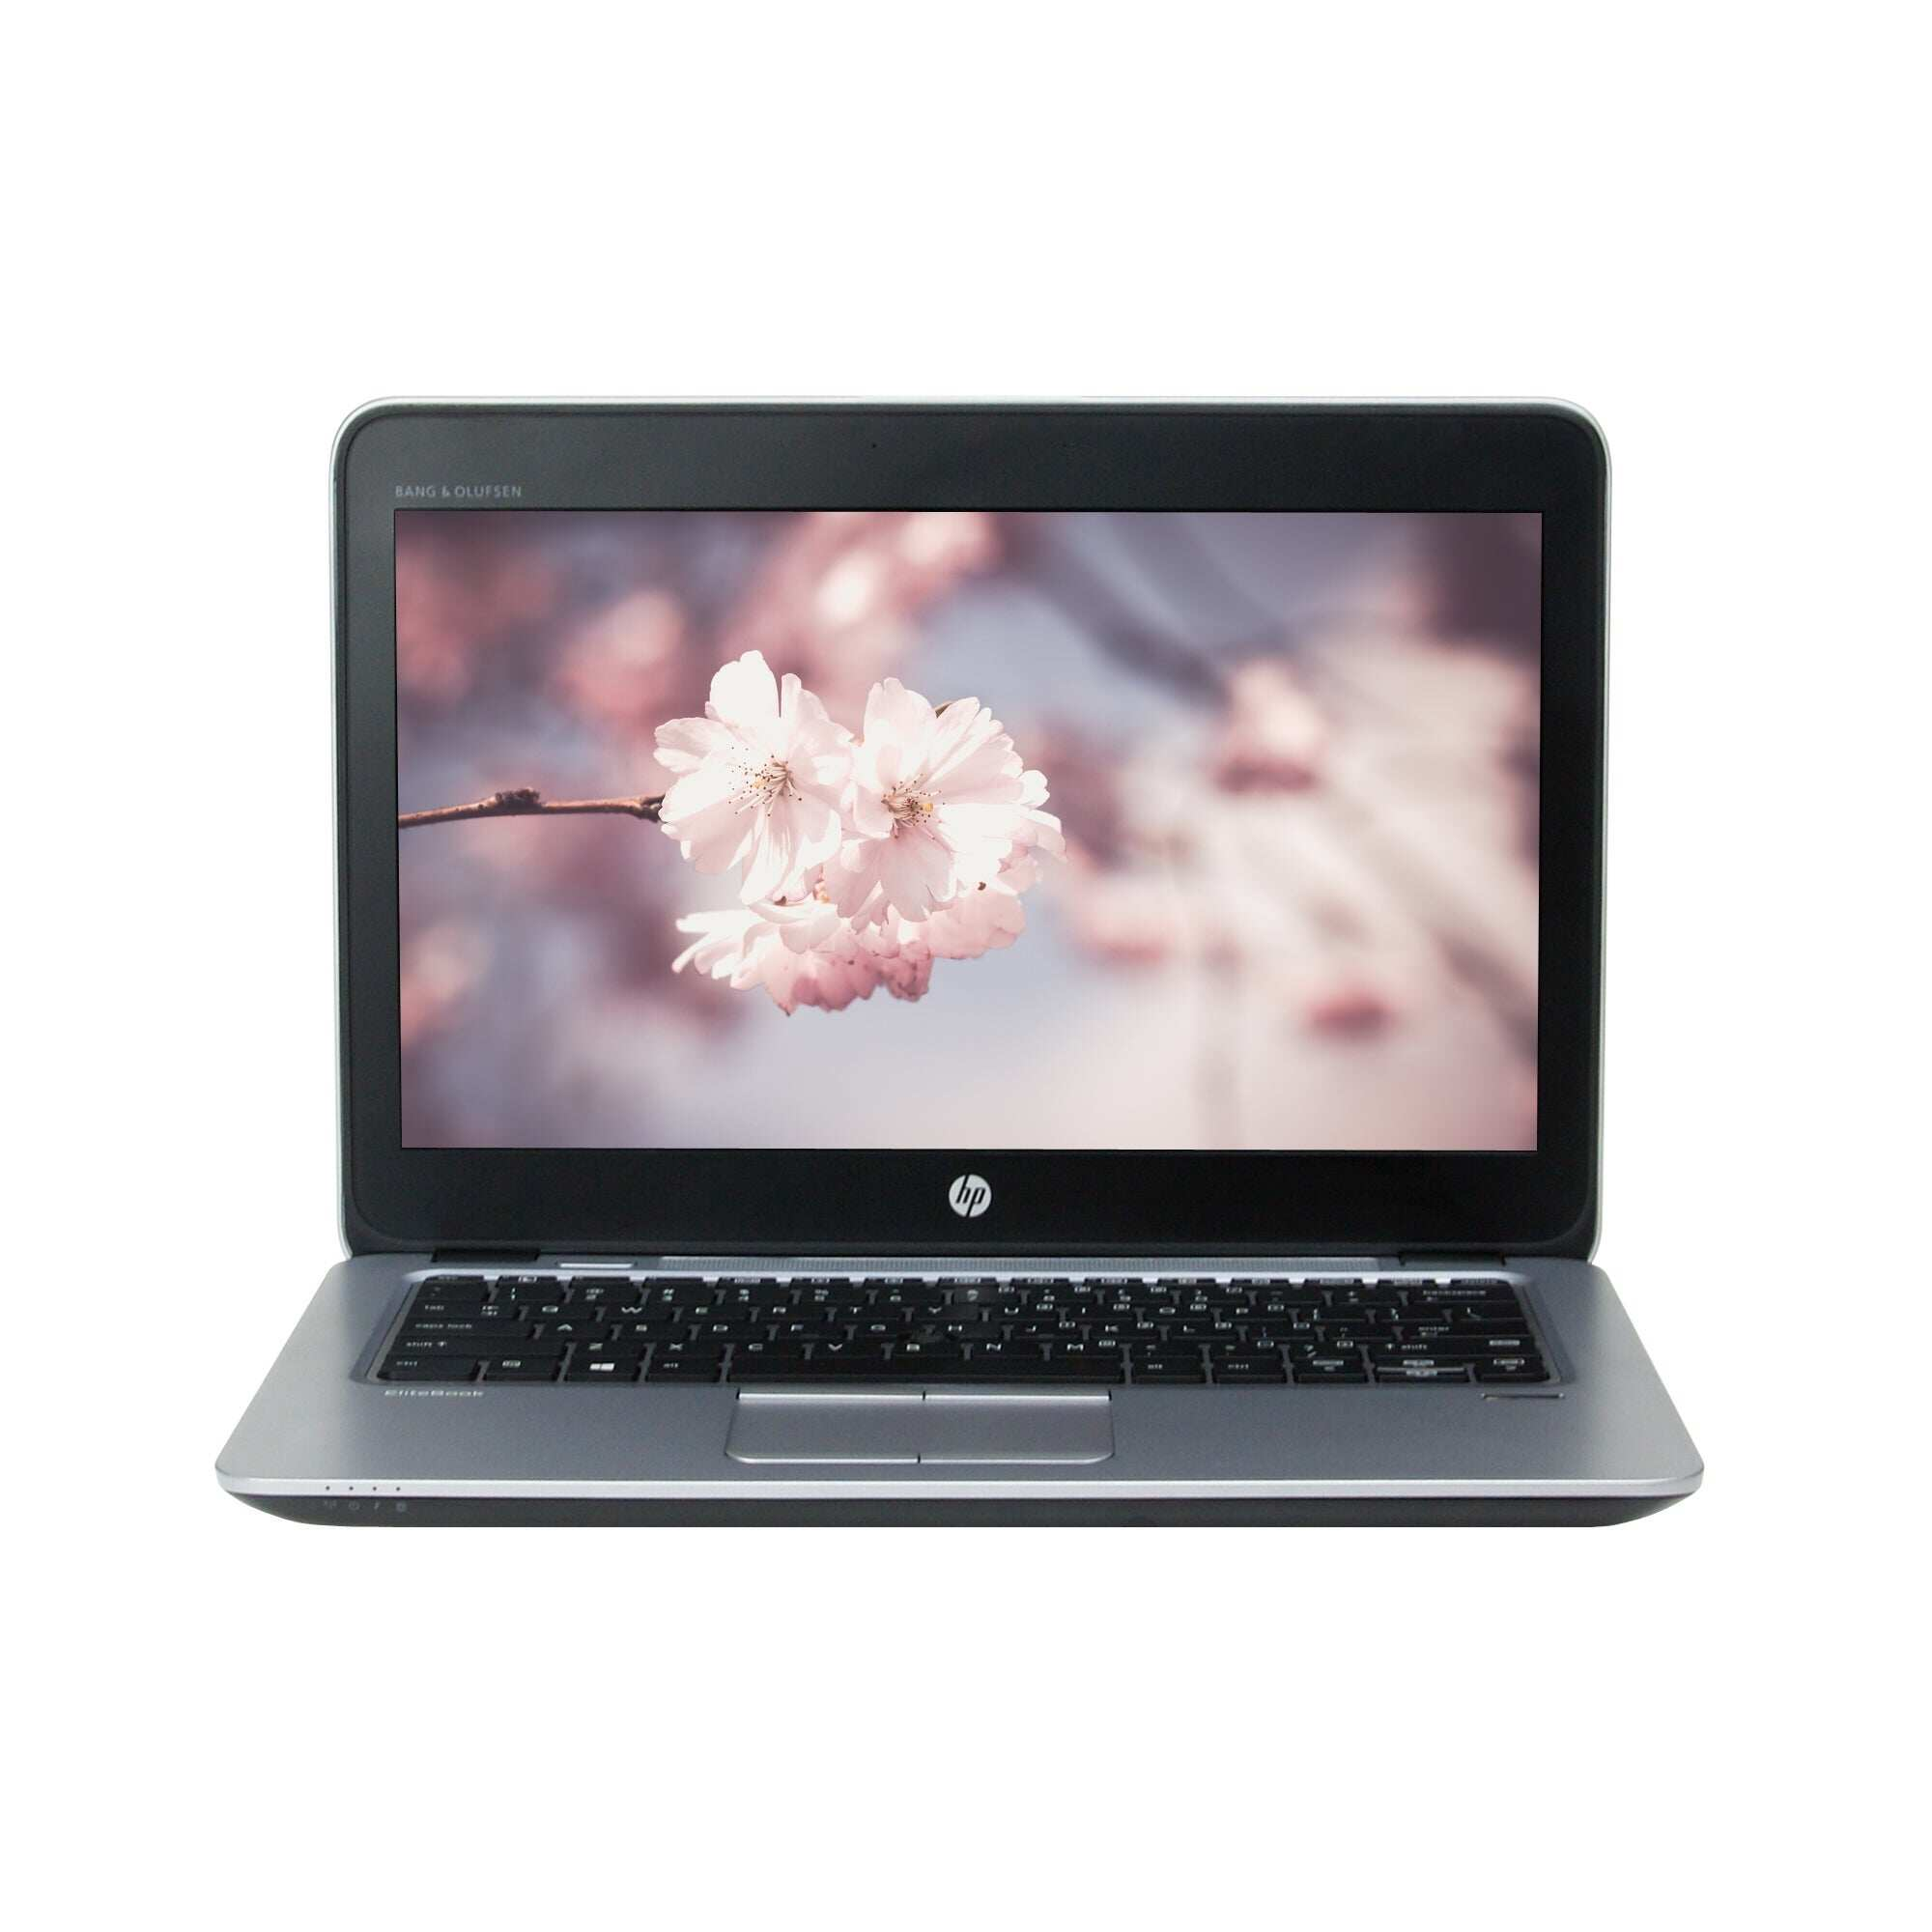 HP EliteBook 820 G3 Core i7-6600U/8gb/500gb (REFURBISHED) Malaysia